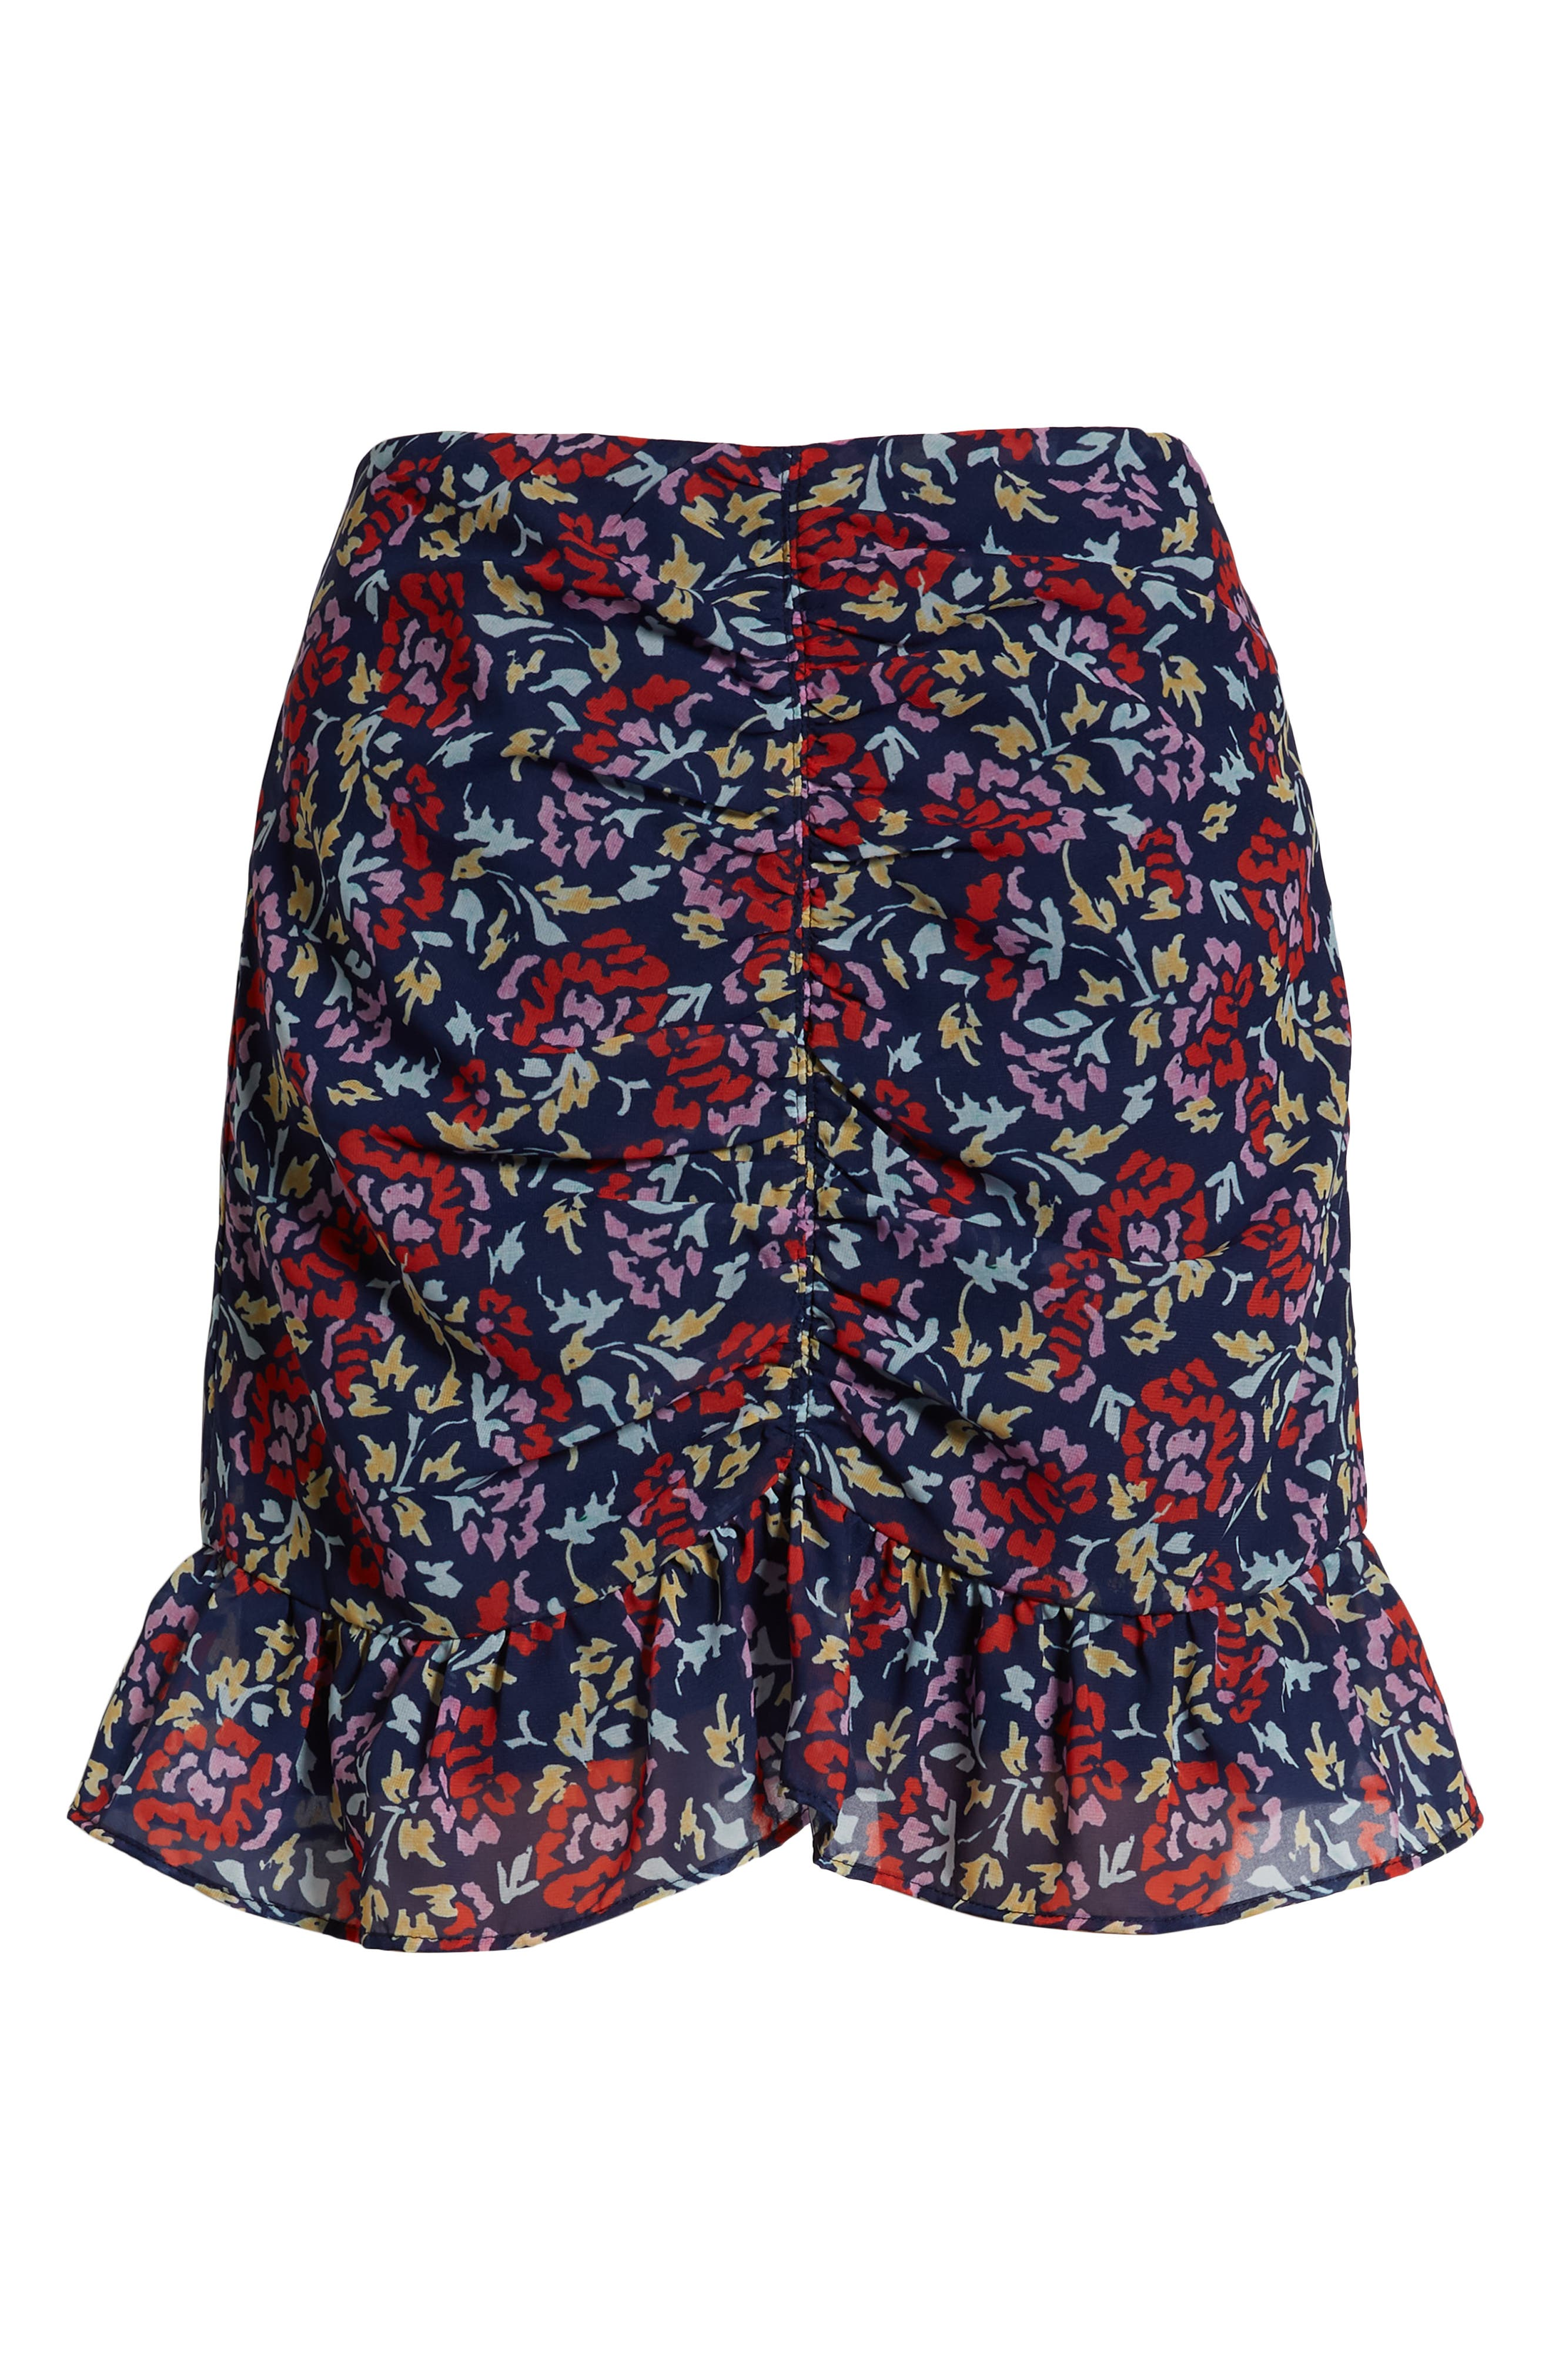 THE FIFTH LABEL,                             Ruched Floral Print Miniskirt,                             Alternate thumbnail 6, color,                             NAVY/ SCARLET WATERCOLOR